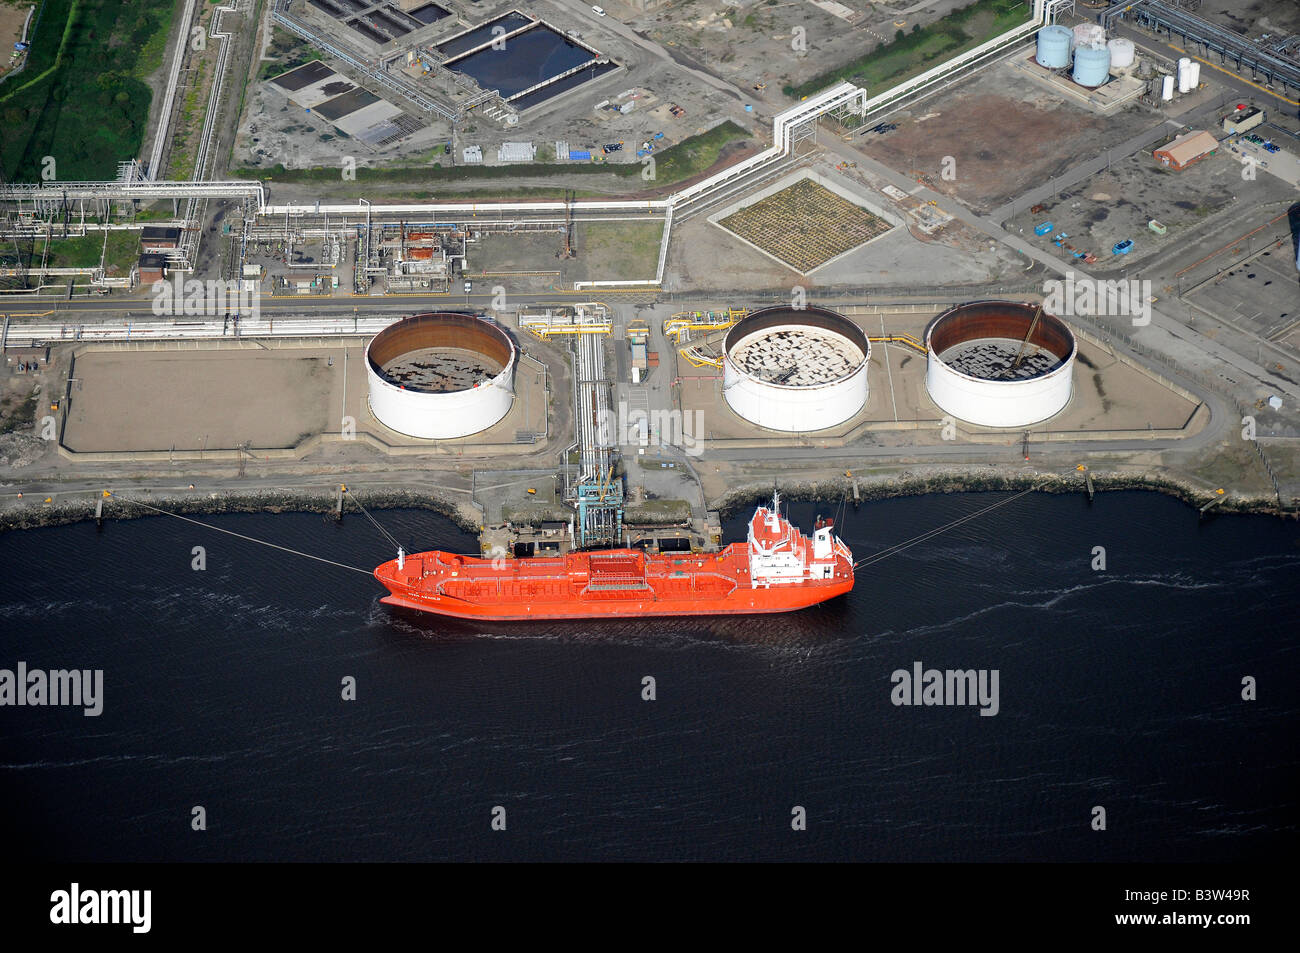 Oil tanker unloading on the River Tees, from the air, Teeside, Northern England - Stock Image